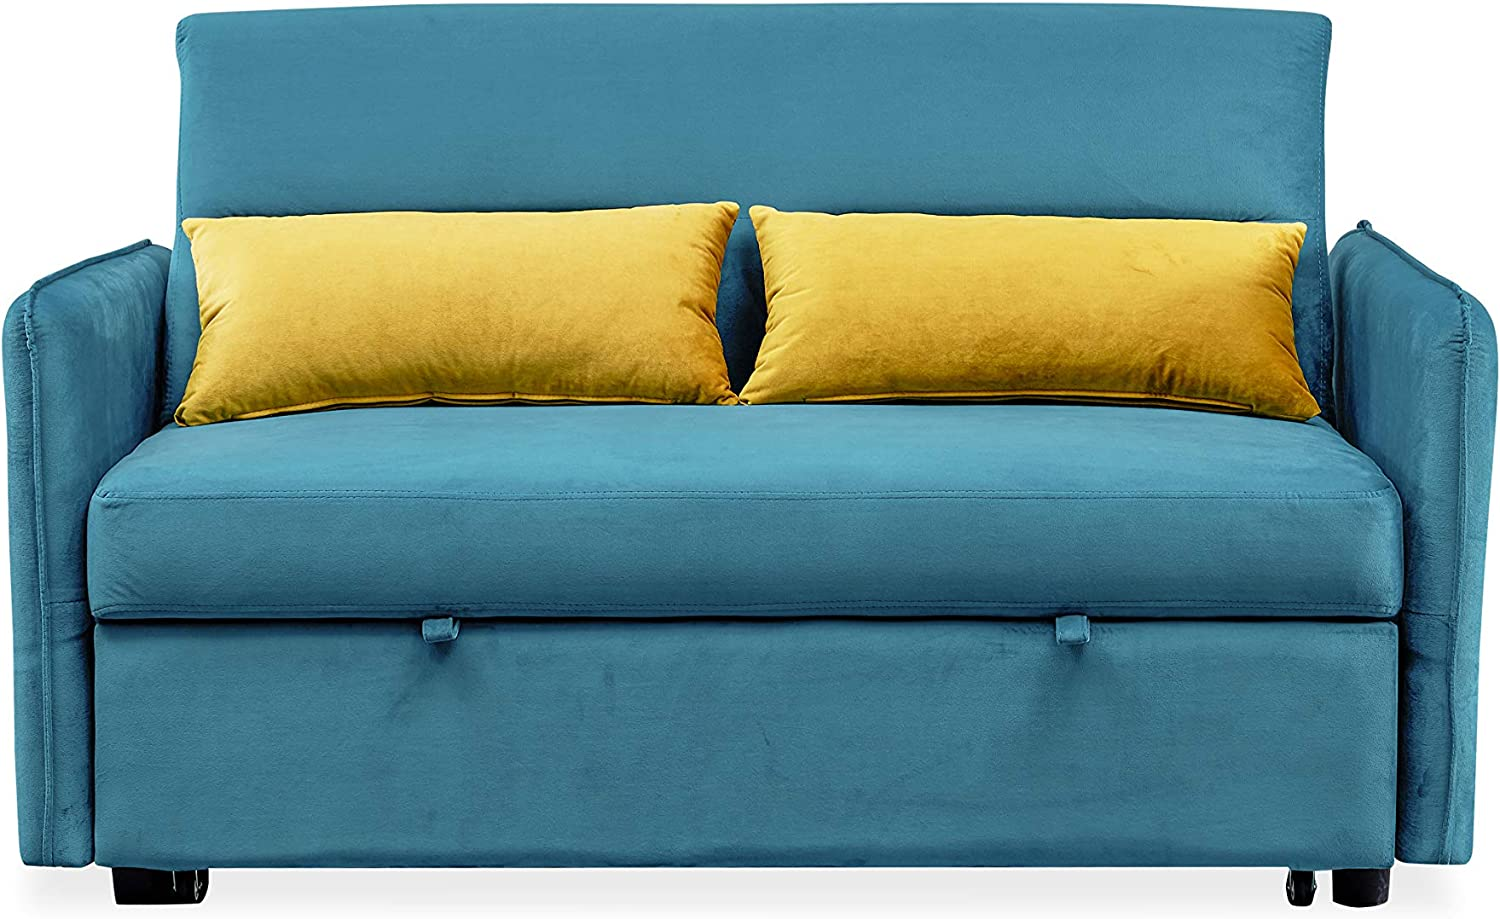 Merax Sleeper Couch Small Velvet Sofa for Living Room Or Bedroom Including Pull Out Bed and 2 Sofabed, Compact, Blue